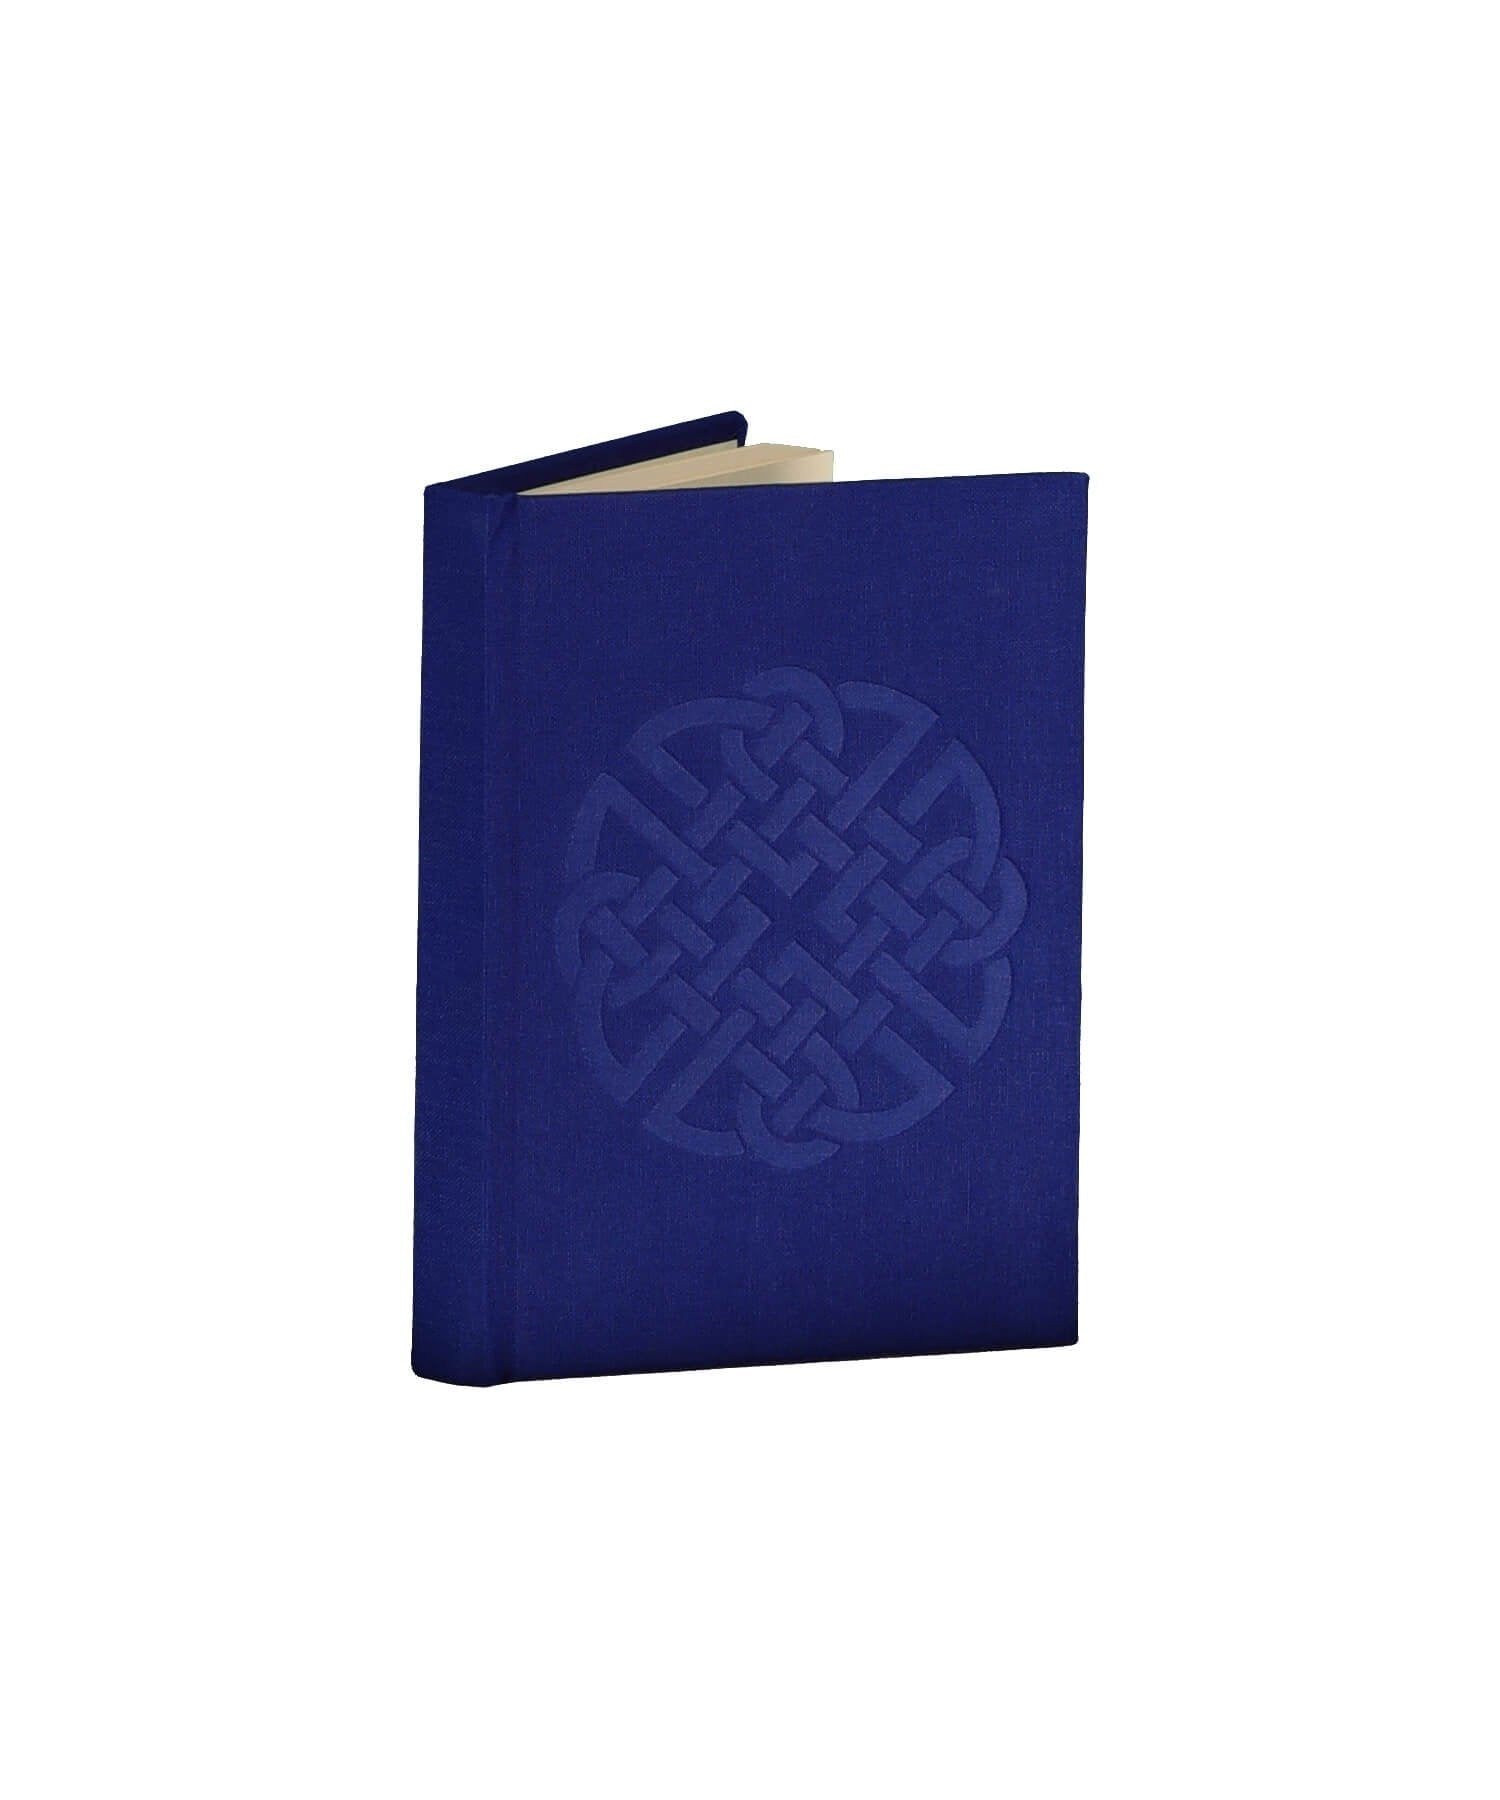 Dara Knot Pocket Notebook - Ocean Duffy Bookbinders Books